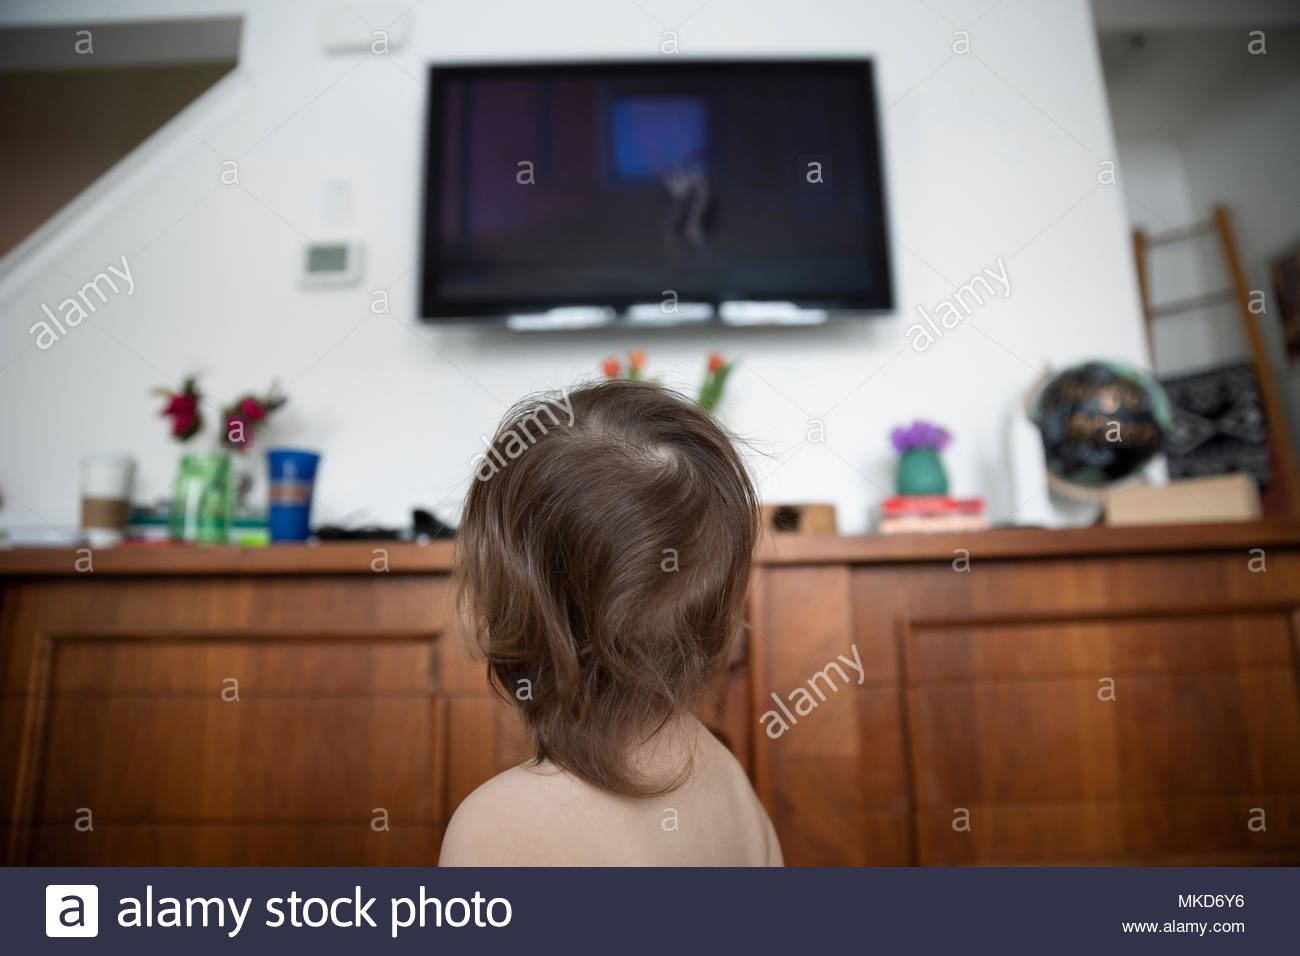 Curious baby boy watching TV - Stock Image